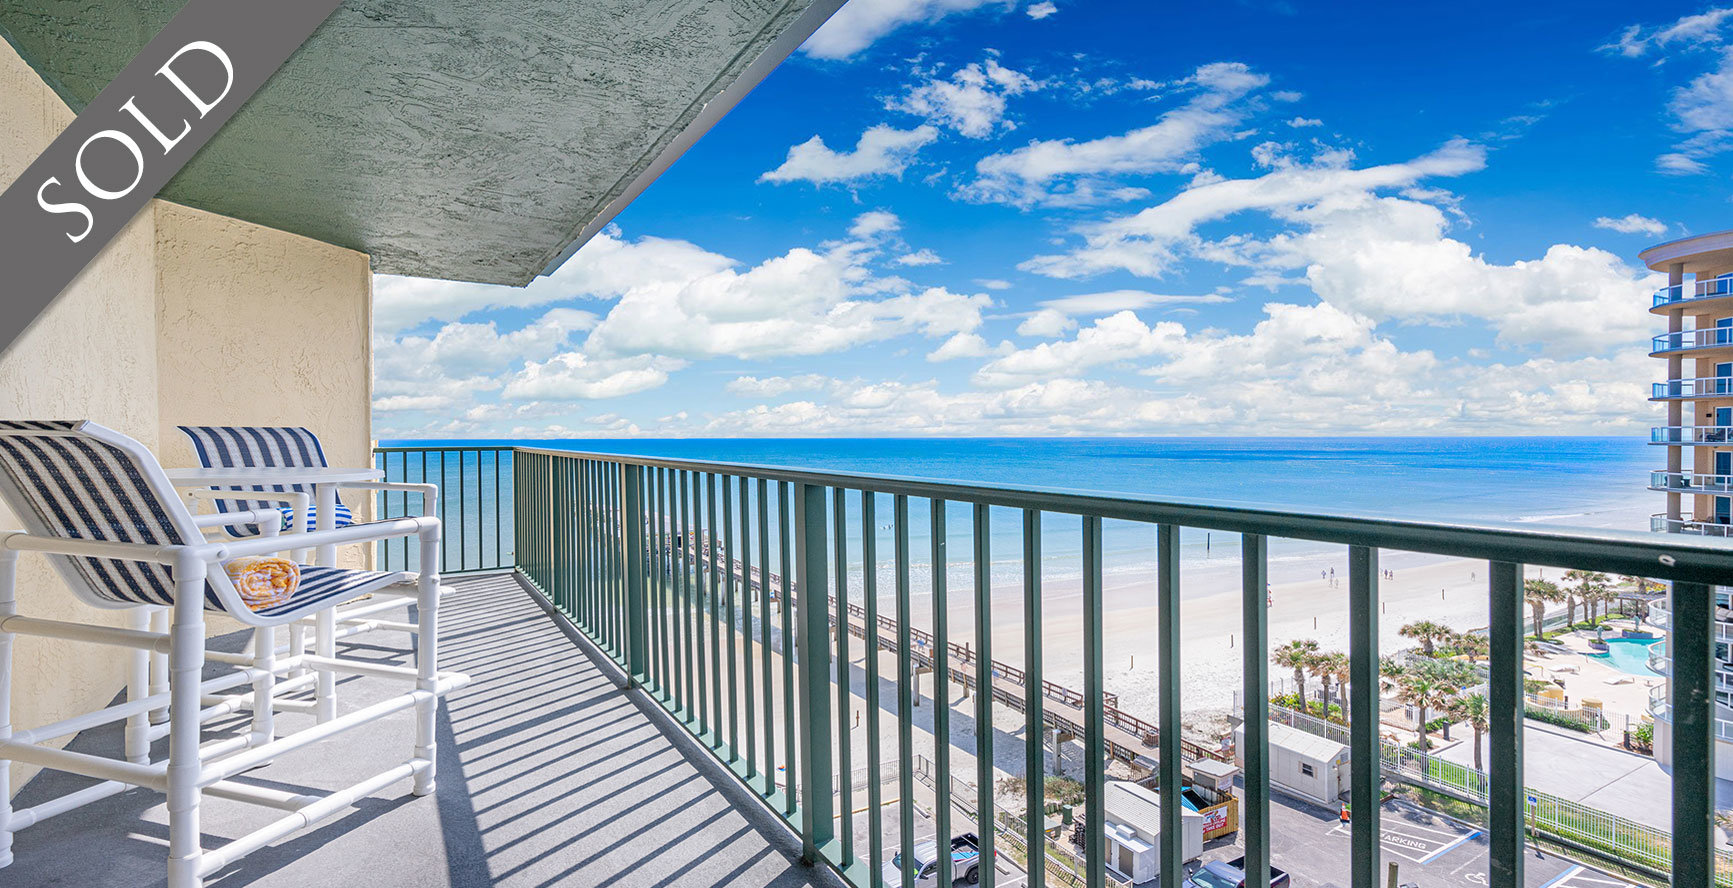 Sunglow oceanfront condos For Sale. Just Sold 3647 S Atlantic Ave Daytona Beach  Shores The LUXE Group 386-299-4043